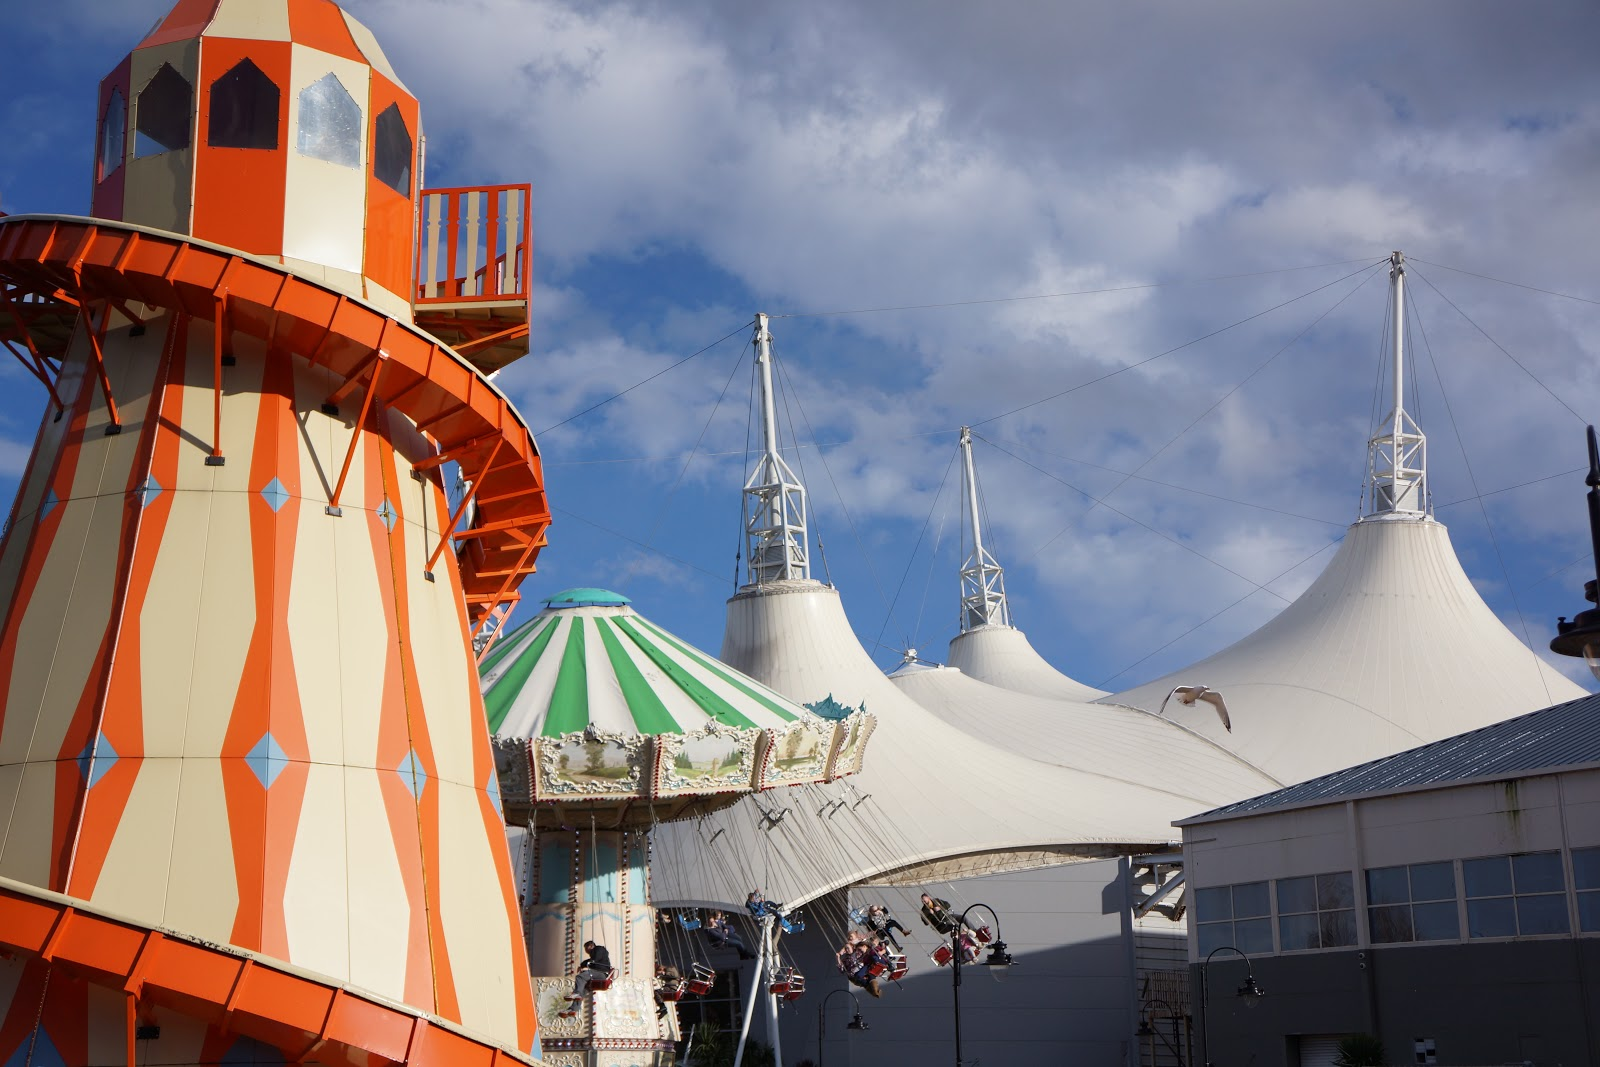 helter skelter in sunshine at butlins minehead